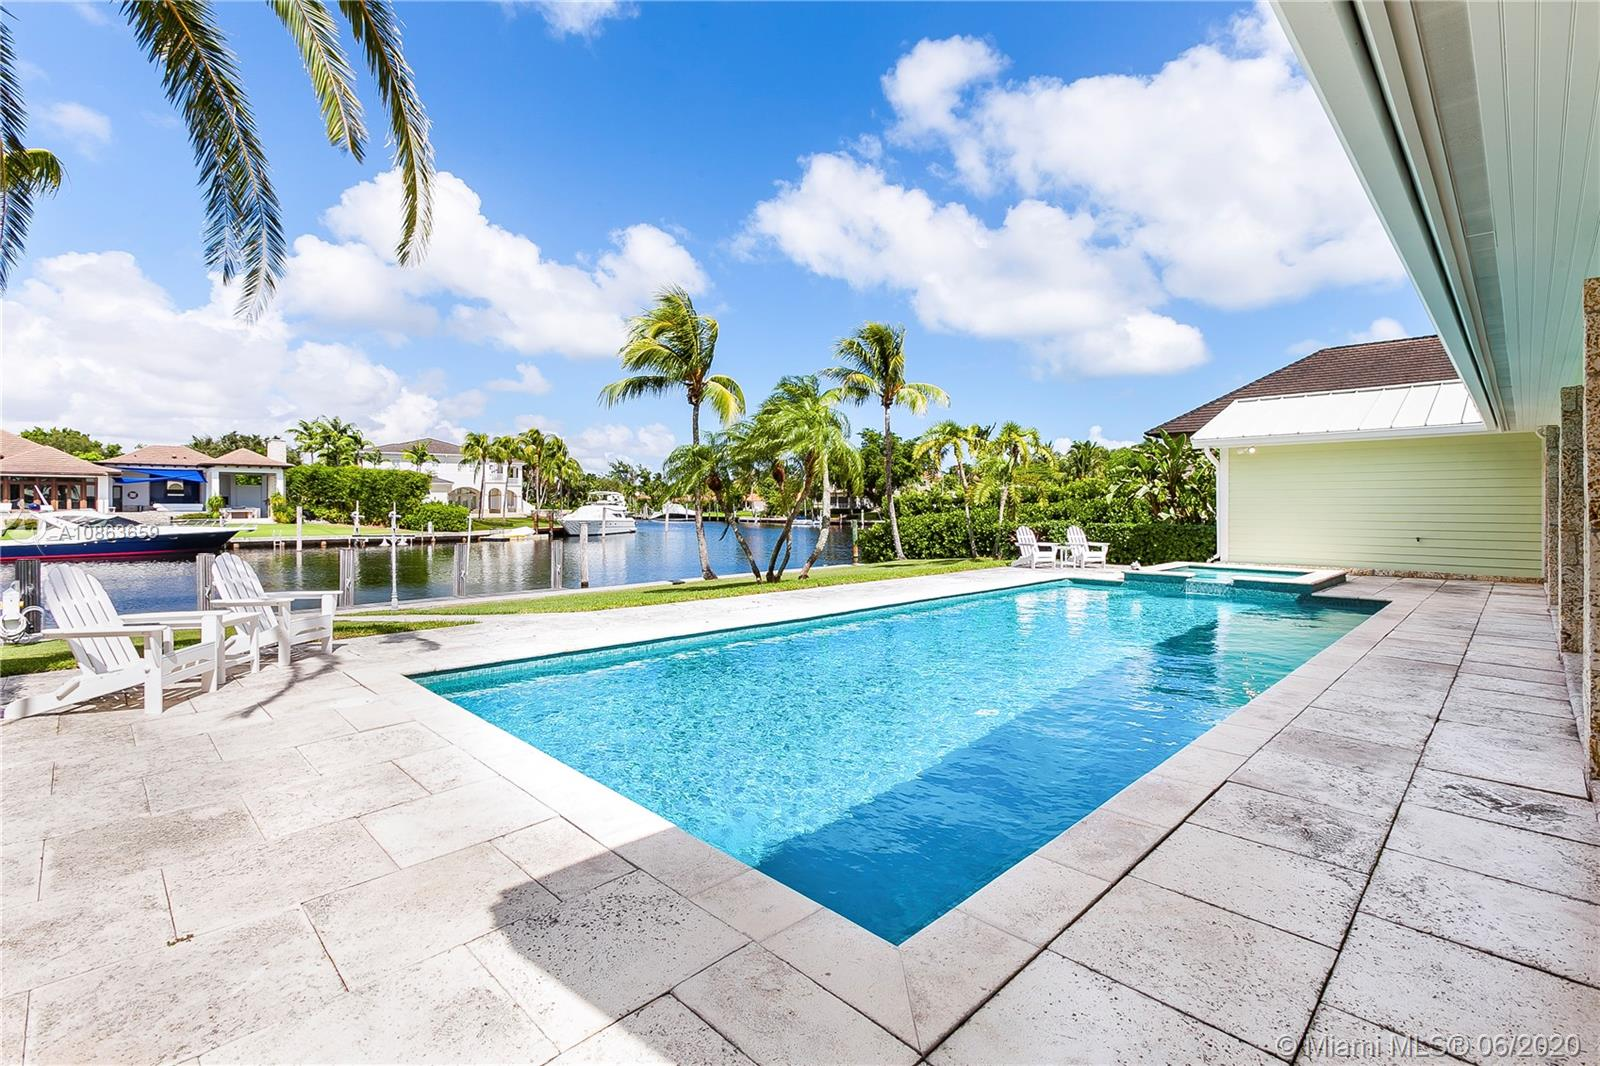 Rare opportunity to buy 22,750 SF of prime Old Cutler Bay waterfront tailored to your timeline: Live effortlessly in this fully renovated, impeccably maintained 3,899 AdjSF Key West classic home w/metal roof, impact windows/doors & porcelain floors; or downsize into the airy, easily navigable 1-level to simplify your silver years. If bigger is better, go all-in w/inclusive custom site plans for a splendid 7,229 SF Tropical Modern residence designed by esteemed Architect Giorgio Balli. Whichever lifestyle suits, wake up to tranquil water vistas along 144 ft of sweeping frontage anchored by a 15,000-lb lift. Biscayne Bay is just around the bend w/no bridges. Intimate, highly coveted Old Cutler Bay boasts 24-hr guard gate, roving patrol, near proximity to top-tier schools & world-class parks.